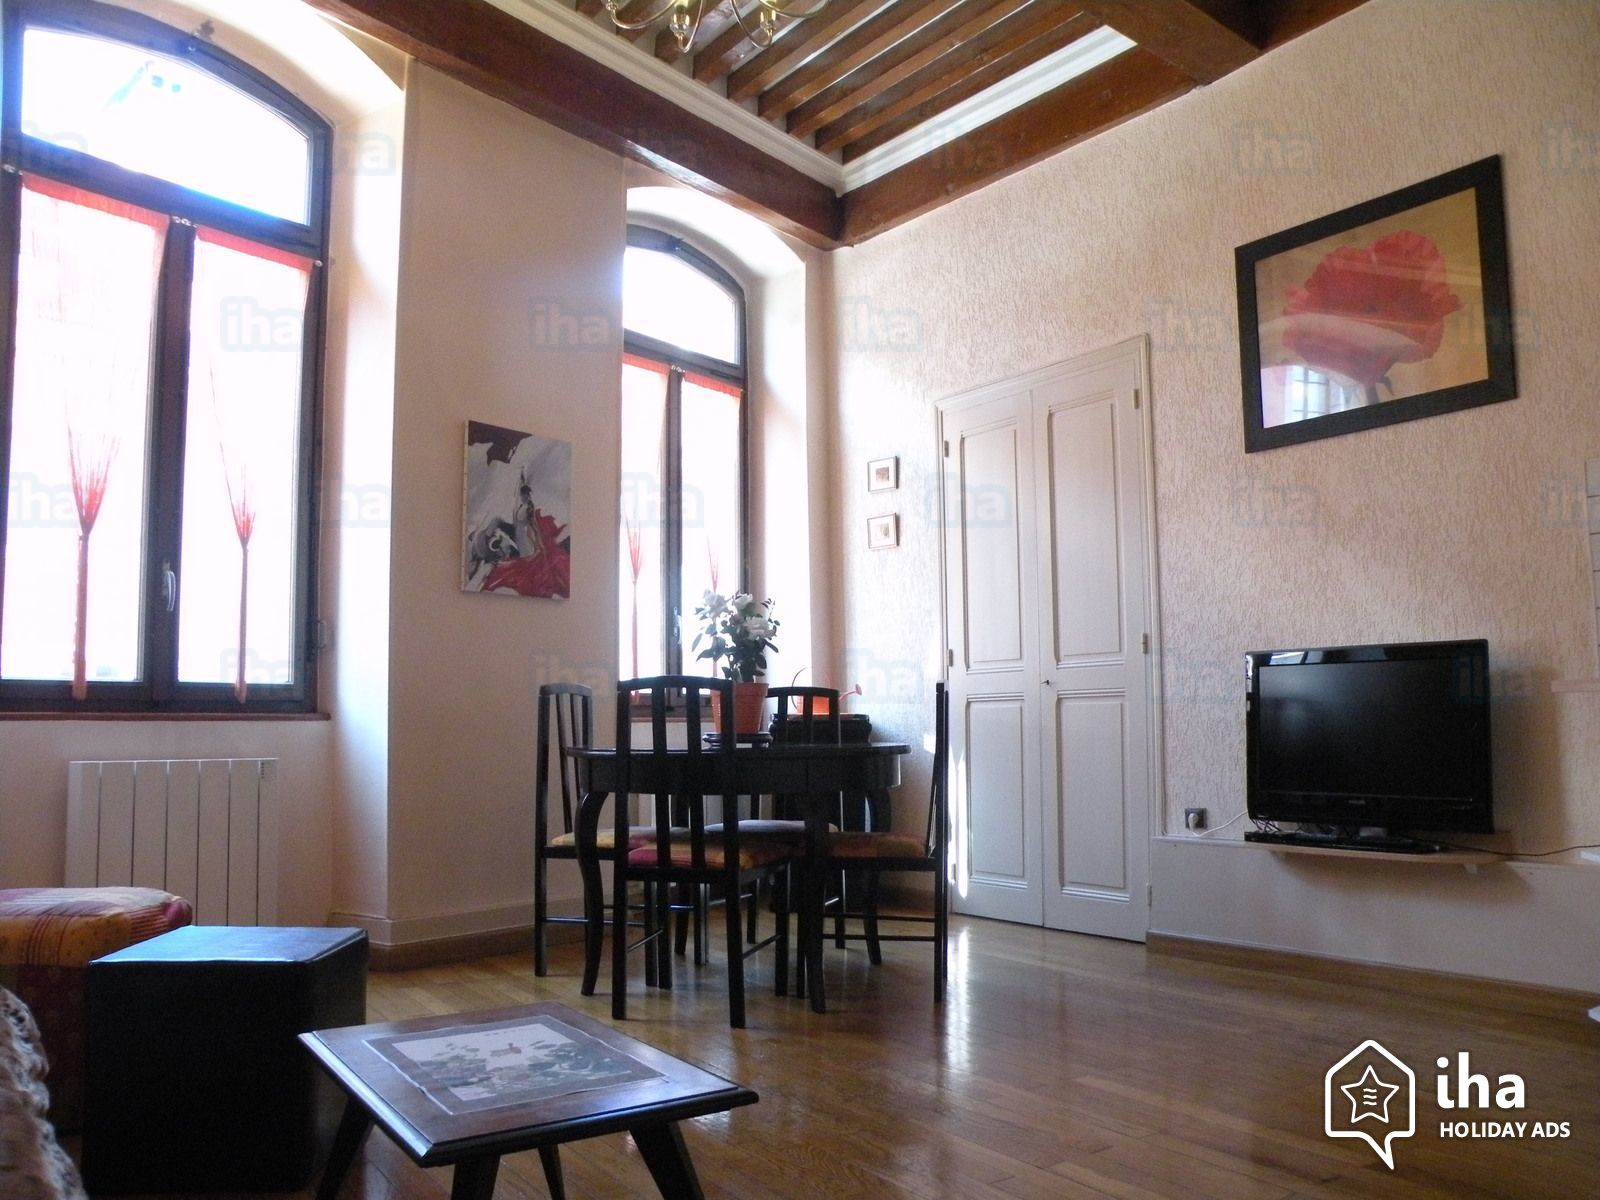 Location Meublé Annecy Location Appartement Annecy